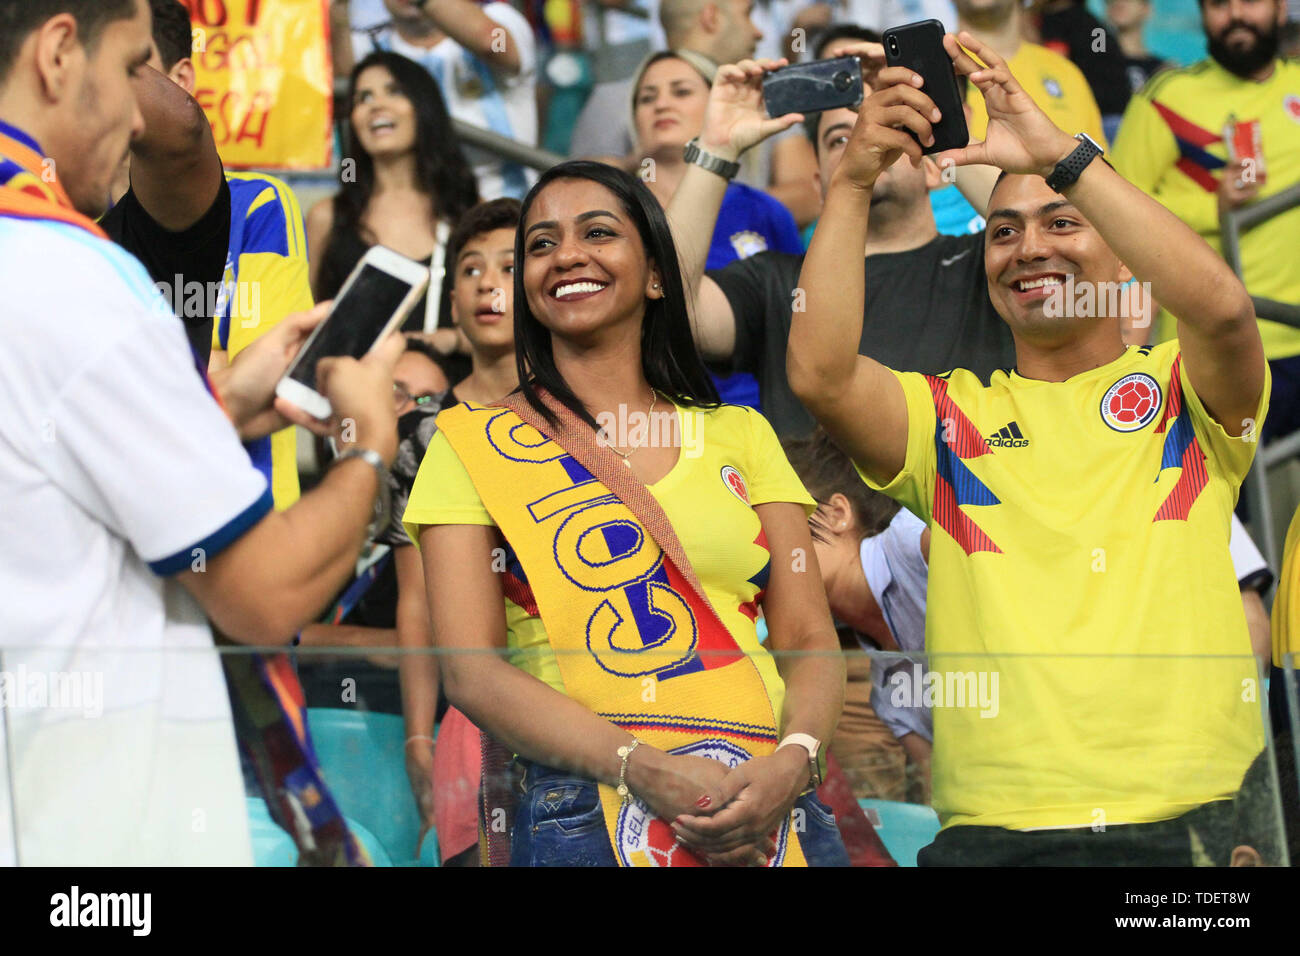 Salvador, Brazil. 15th June, 2019. Colombian fan during match between Argentina and Colombia, game 03, valid for the group phase of Copa América 2019, held this Saturday, 15, at the Arena Fonte Nova in Salvador, BA. Credit: Mauro Akiin Nassor/FotoArena/Alamy Live News Stock Photo